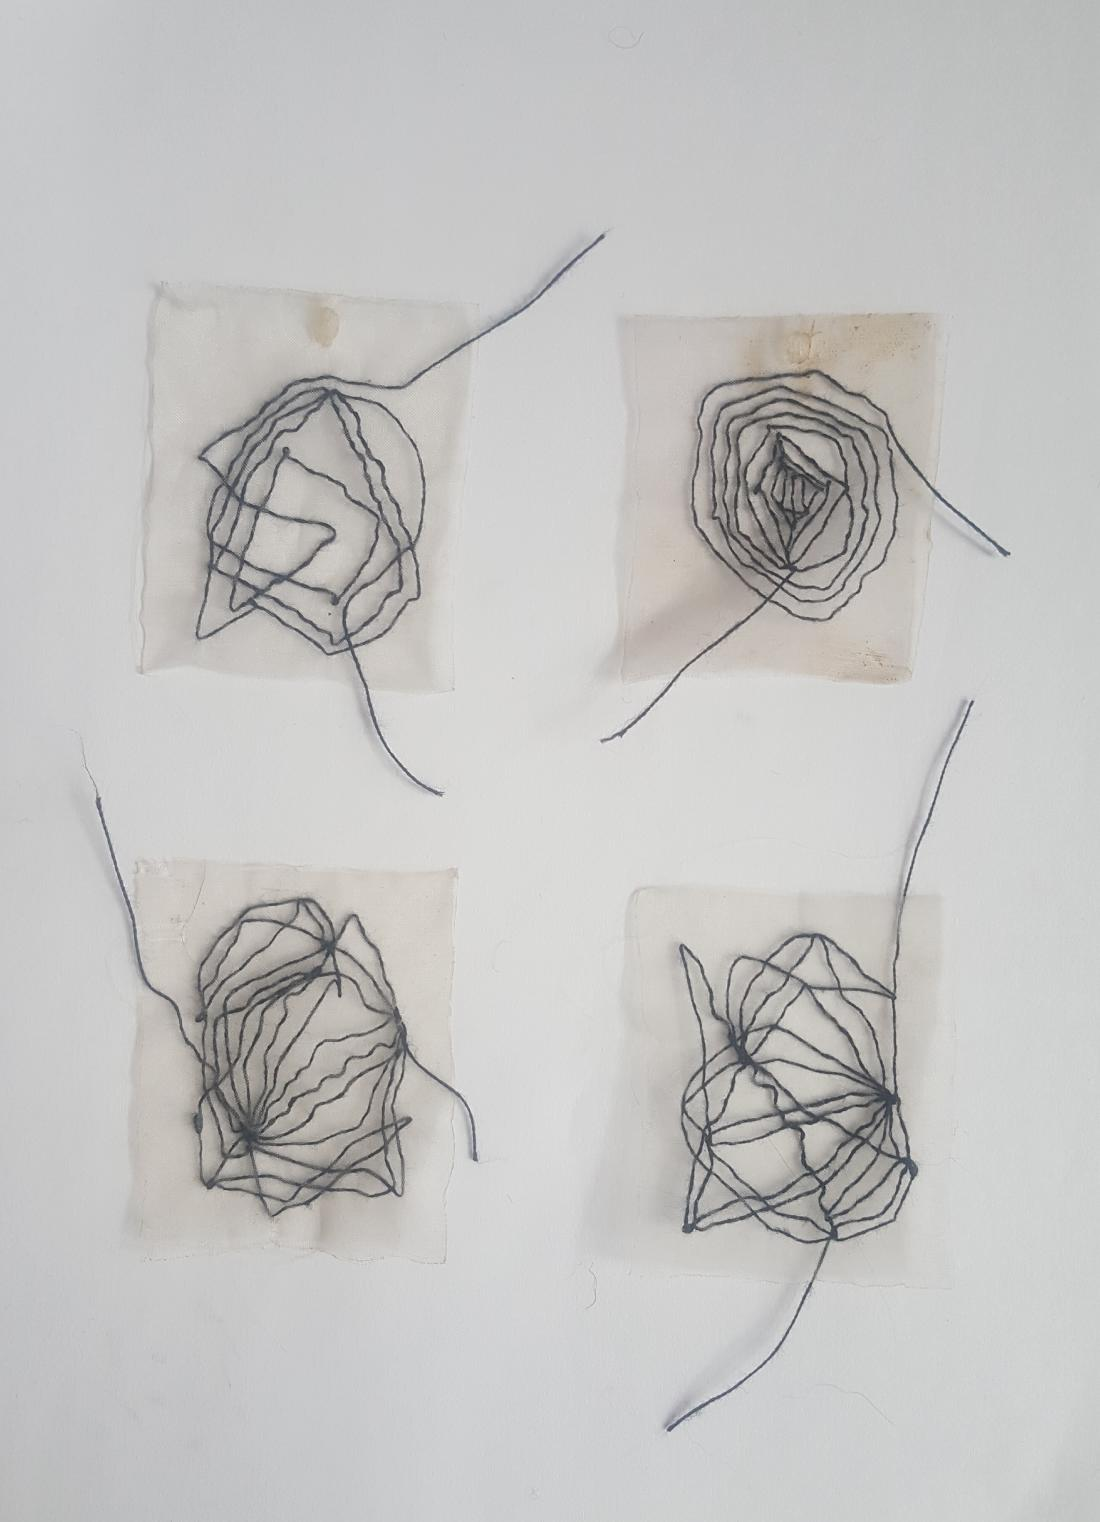 Huda Lutfi, Meandering of a Black Thread, 2020, 11 x 13 cm each